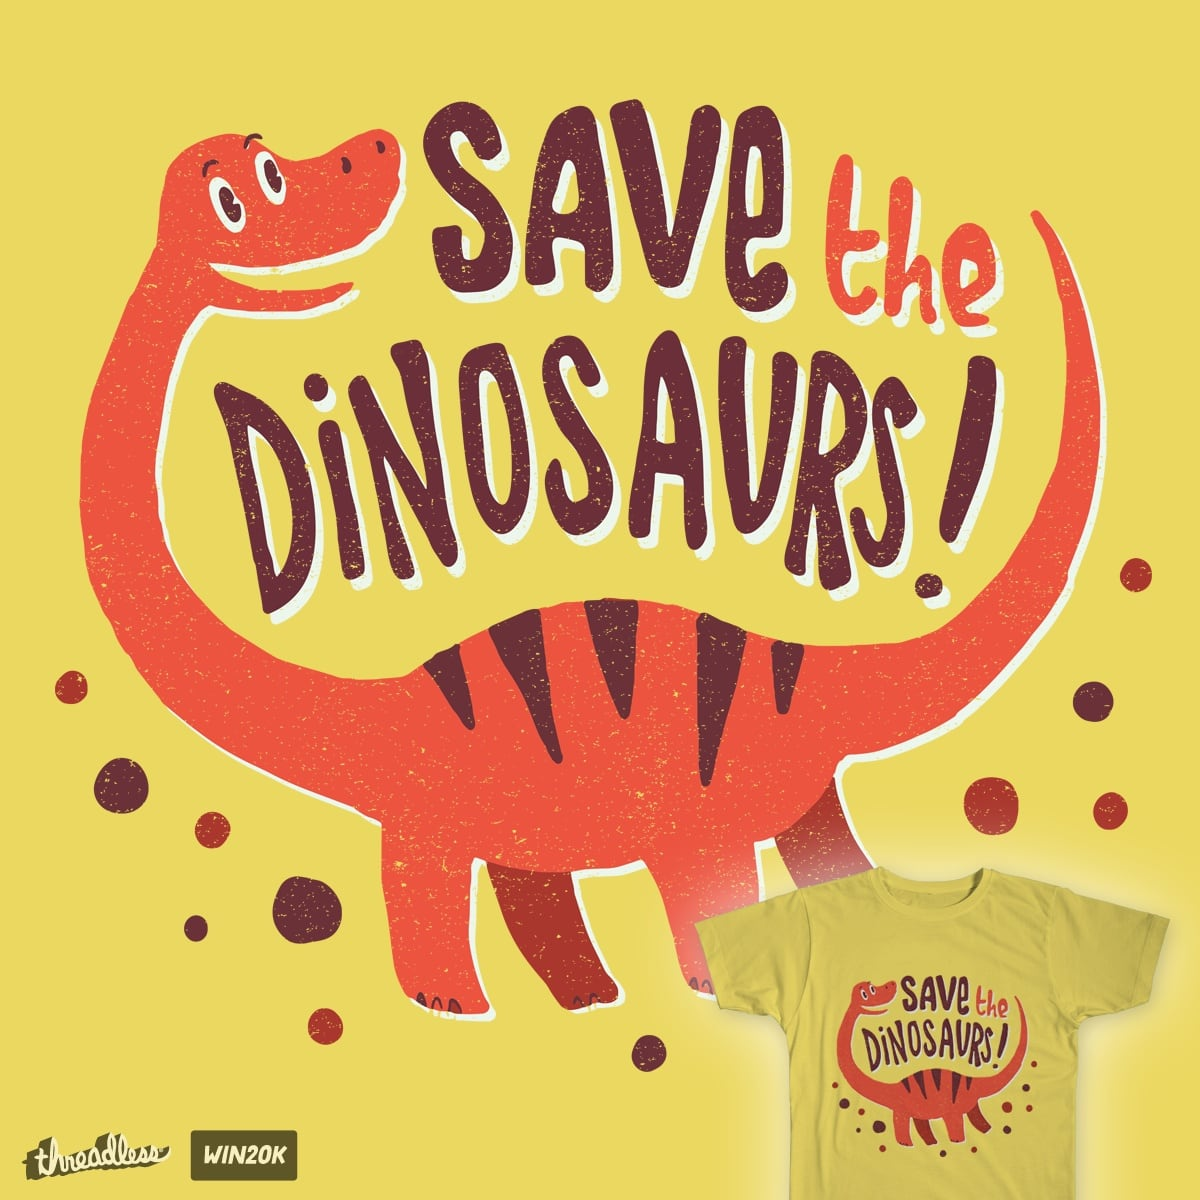 Save The Dinosaurs! by Tabners on Threadless